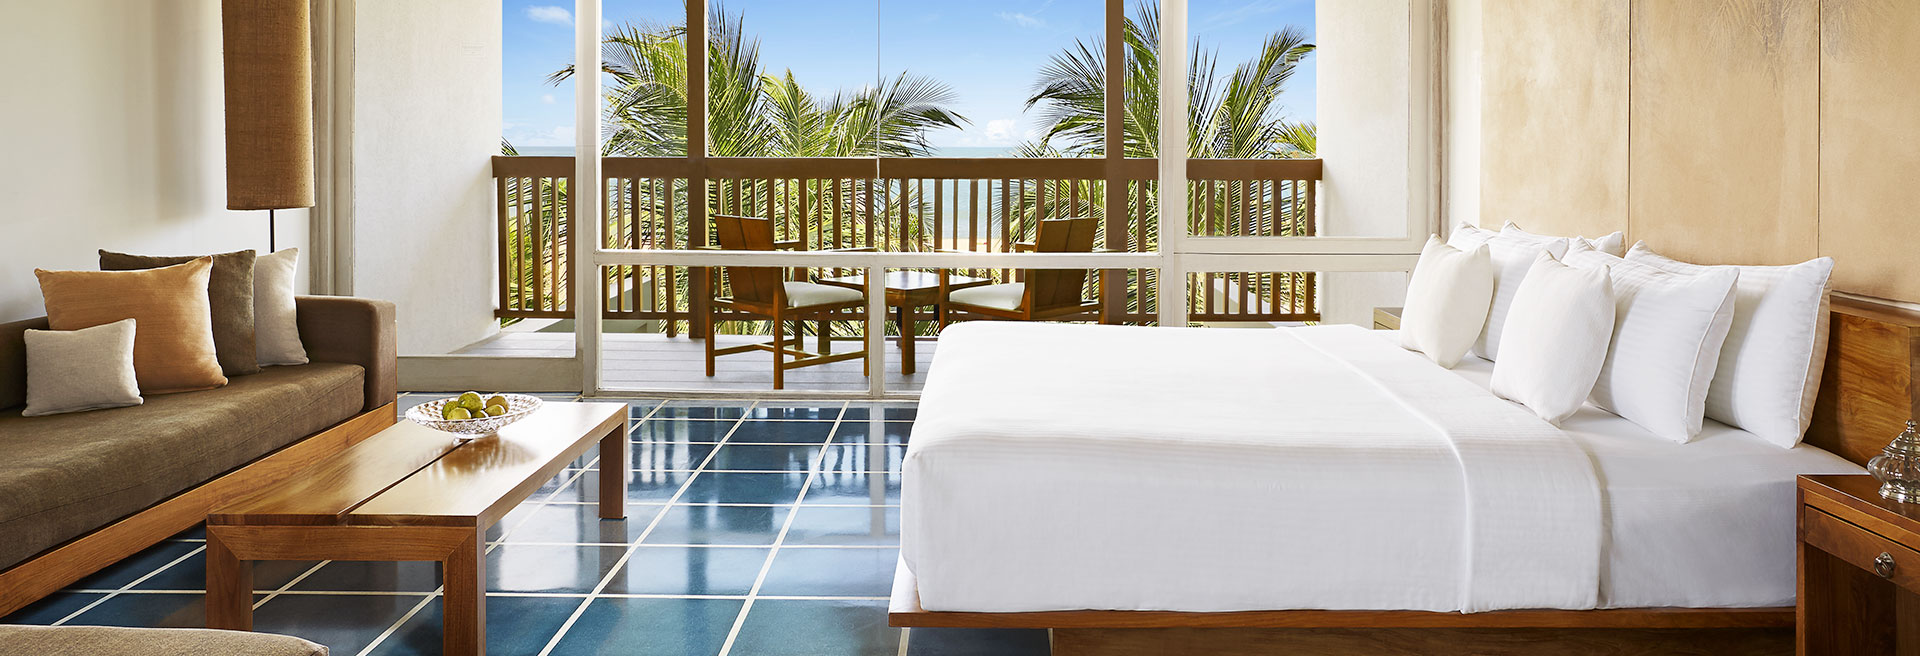 Super deluxe room in Jewting Yala with a private balcony